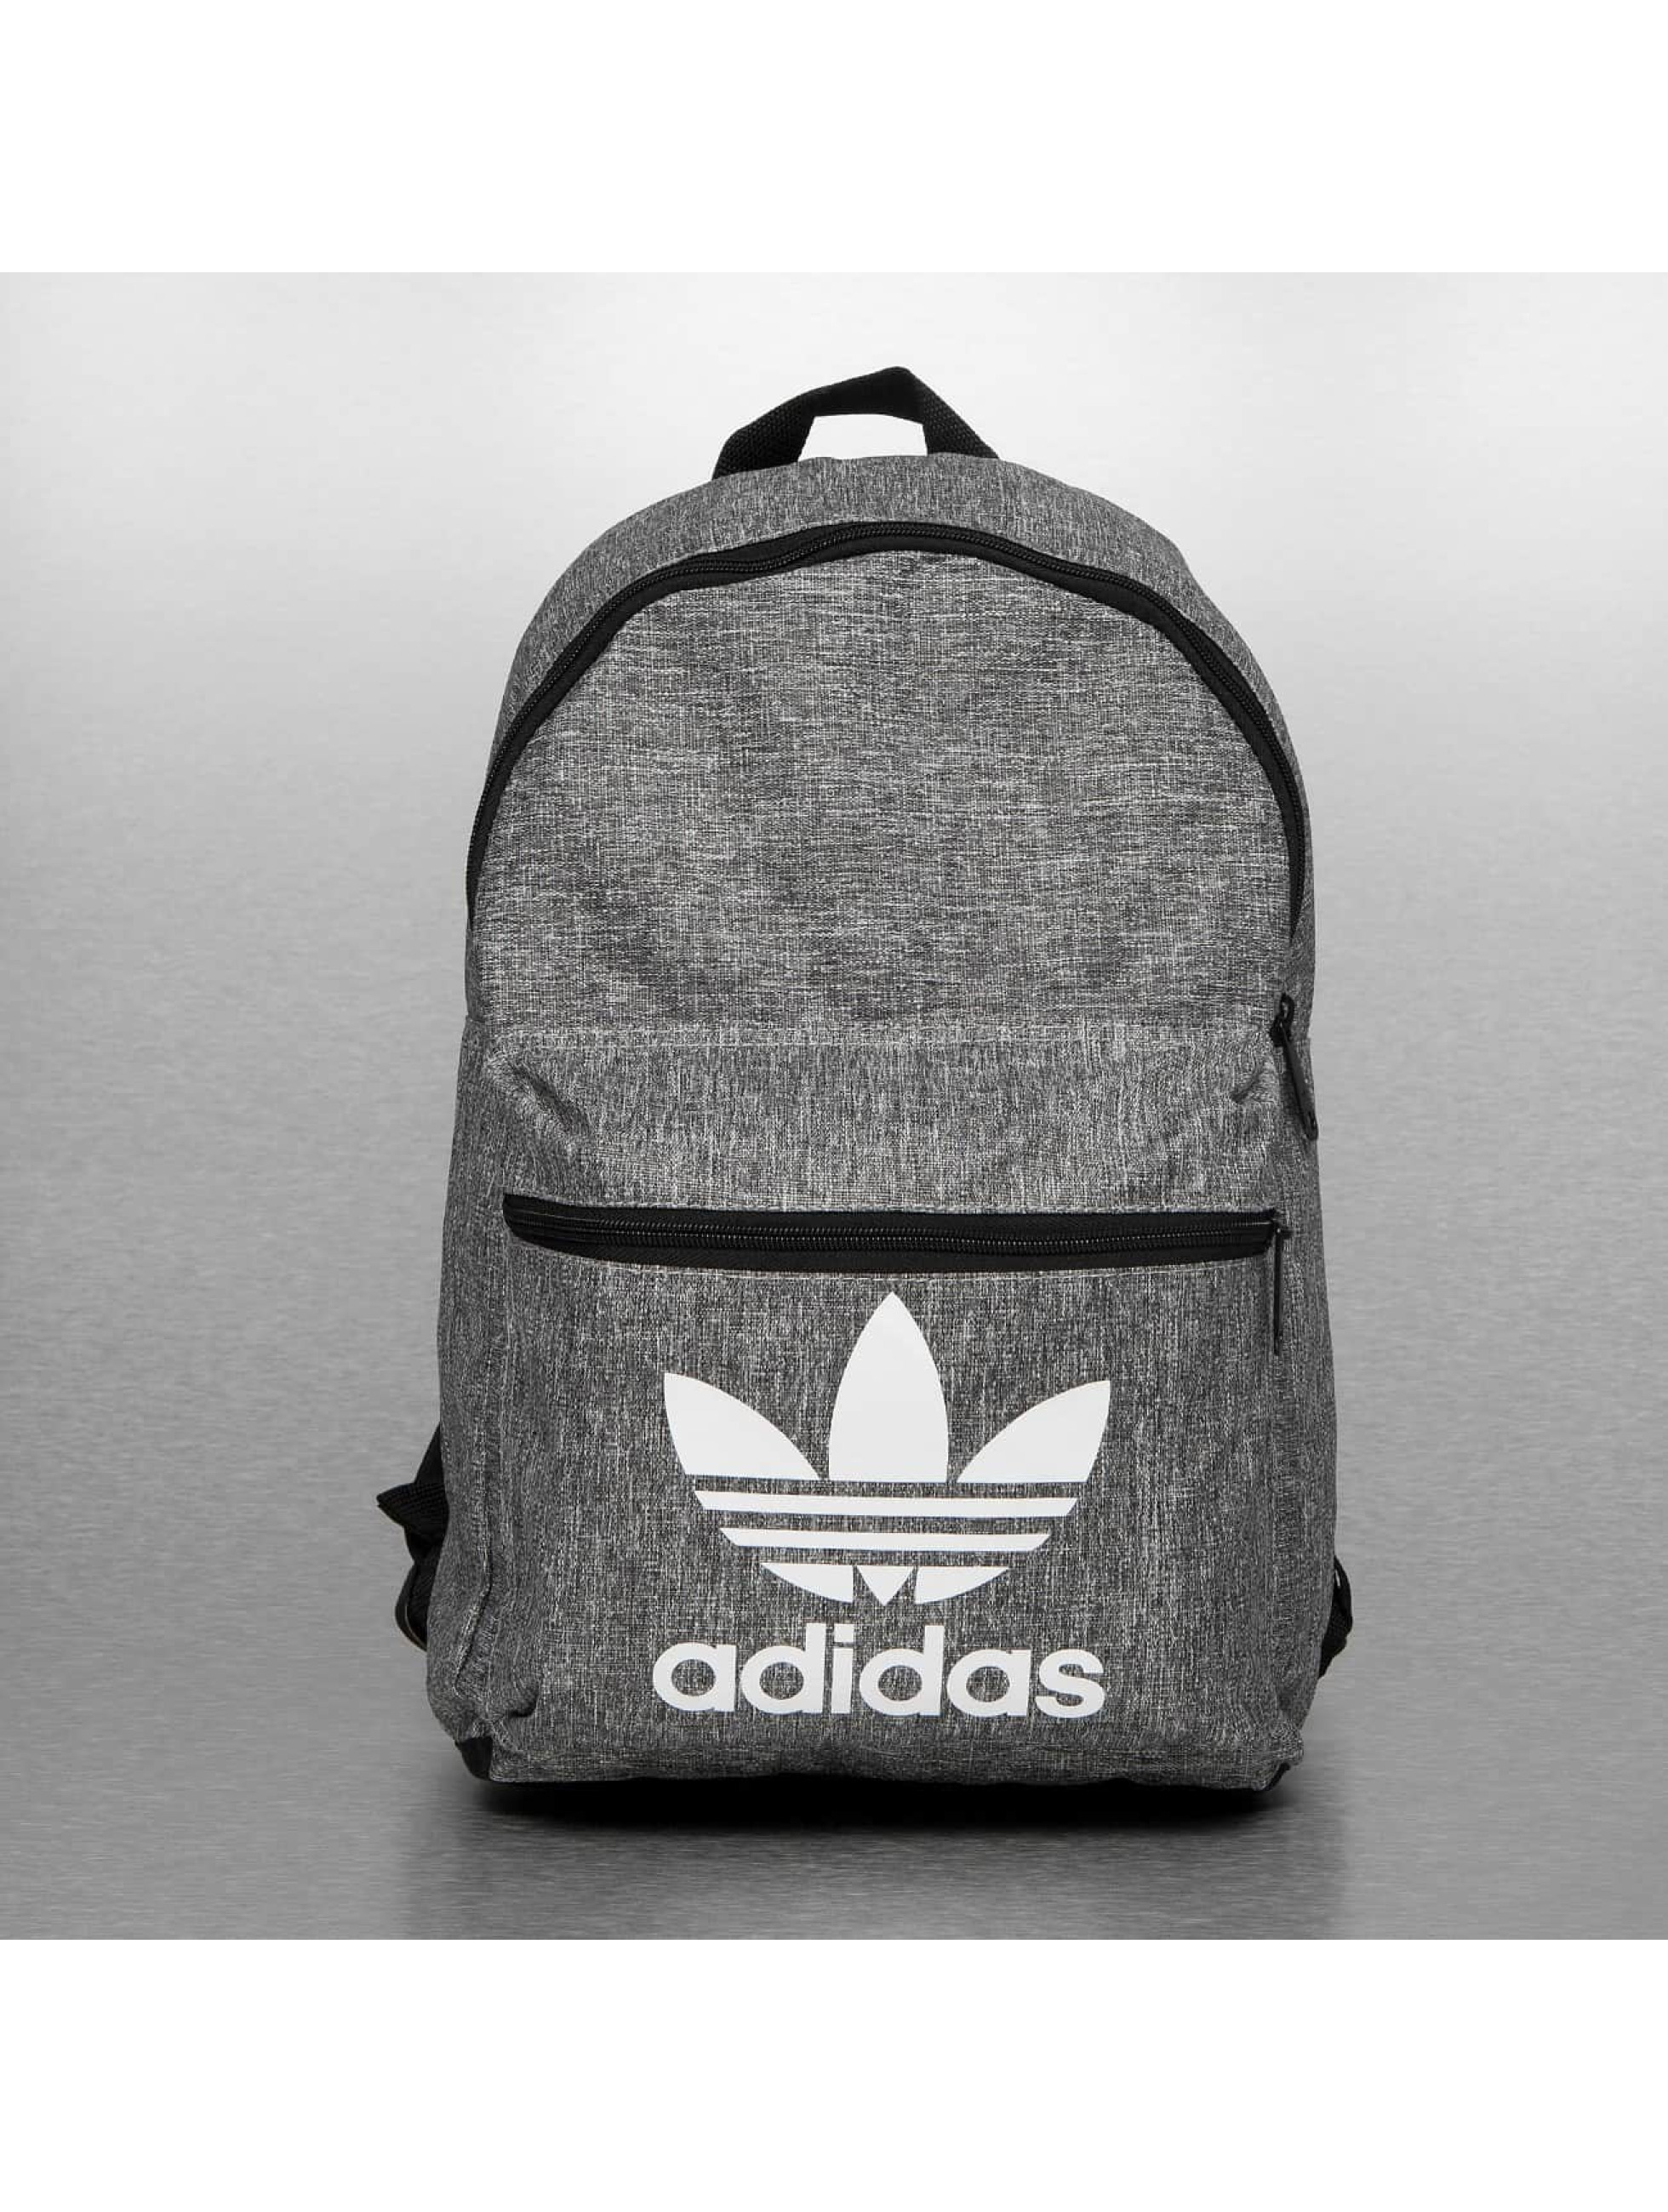 adidas rucksack classic melange in grau 261402. Black Bedroom Furniture Sets. Home Design Ideas